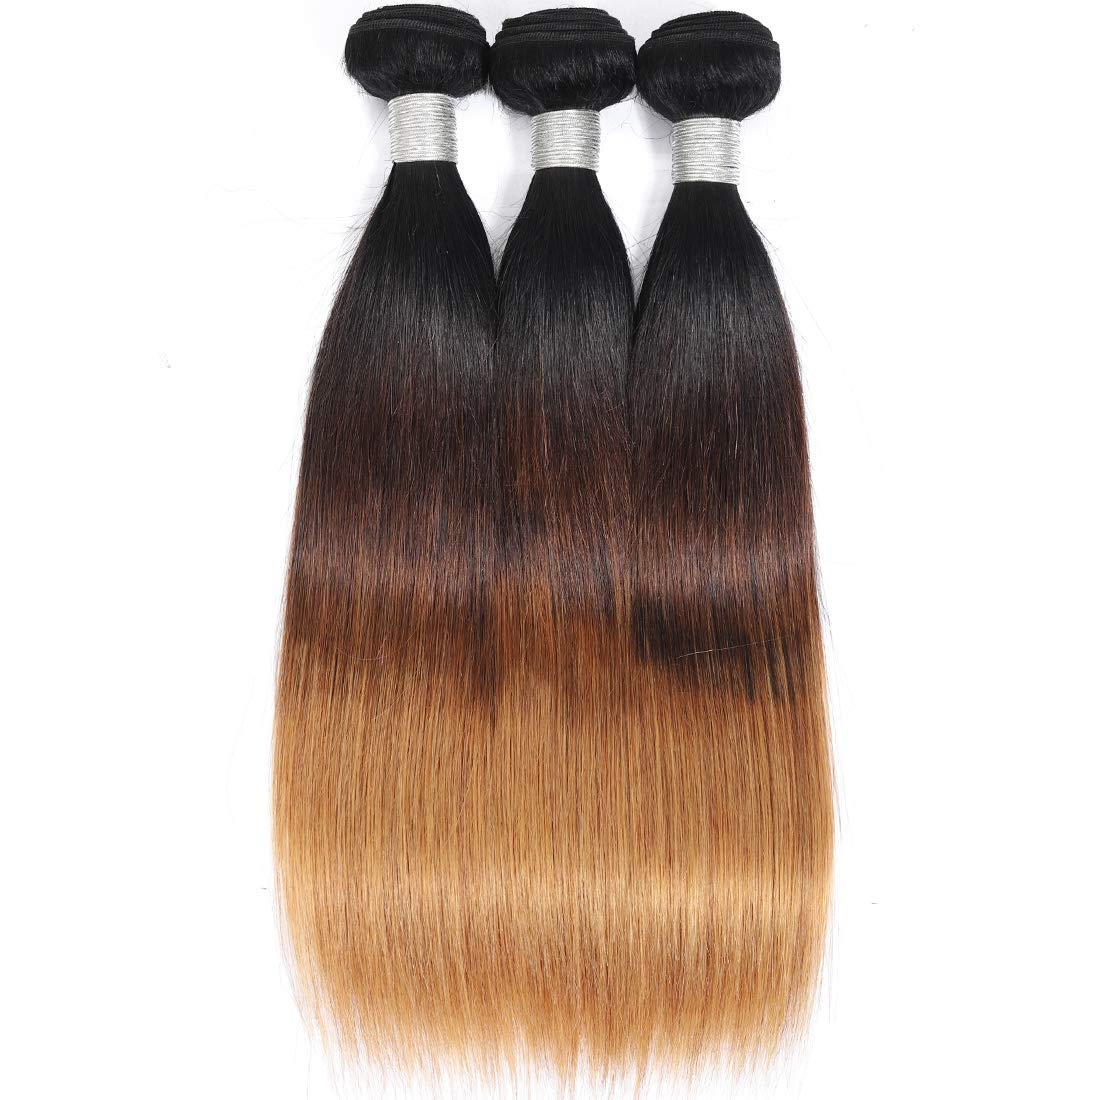 AUTTO Hair New popularity Brazilian Virgin Straight Ombre 18 Direct sale of manufacturer 16 3 20inch B